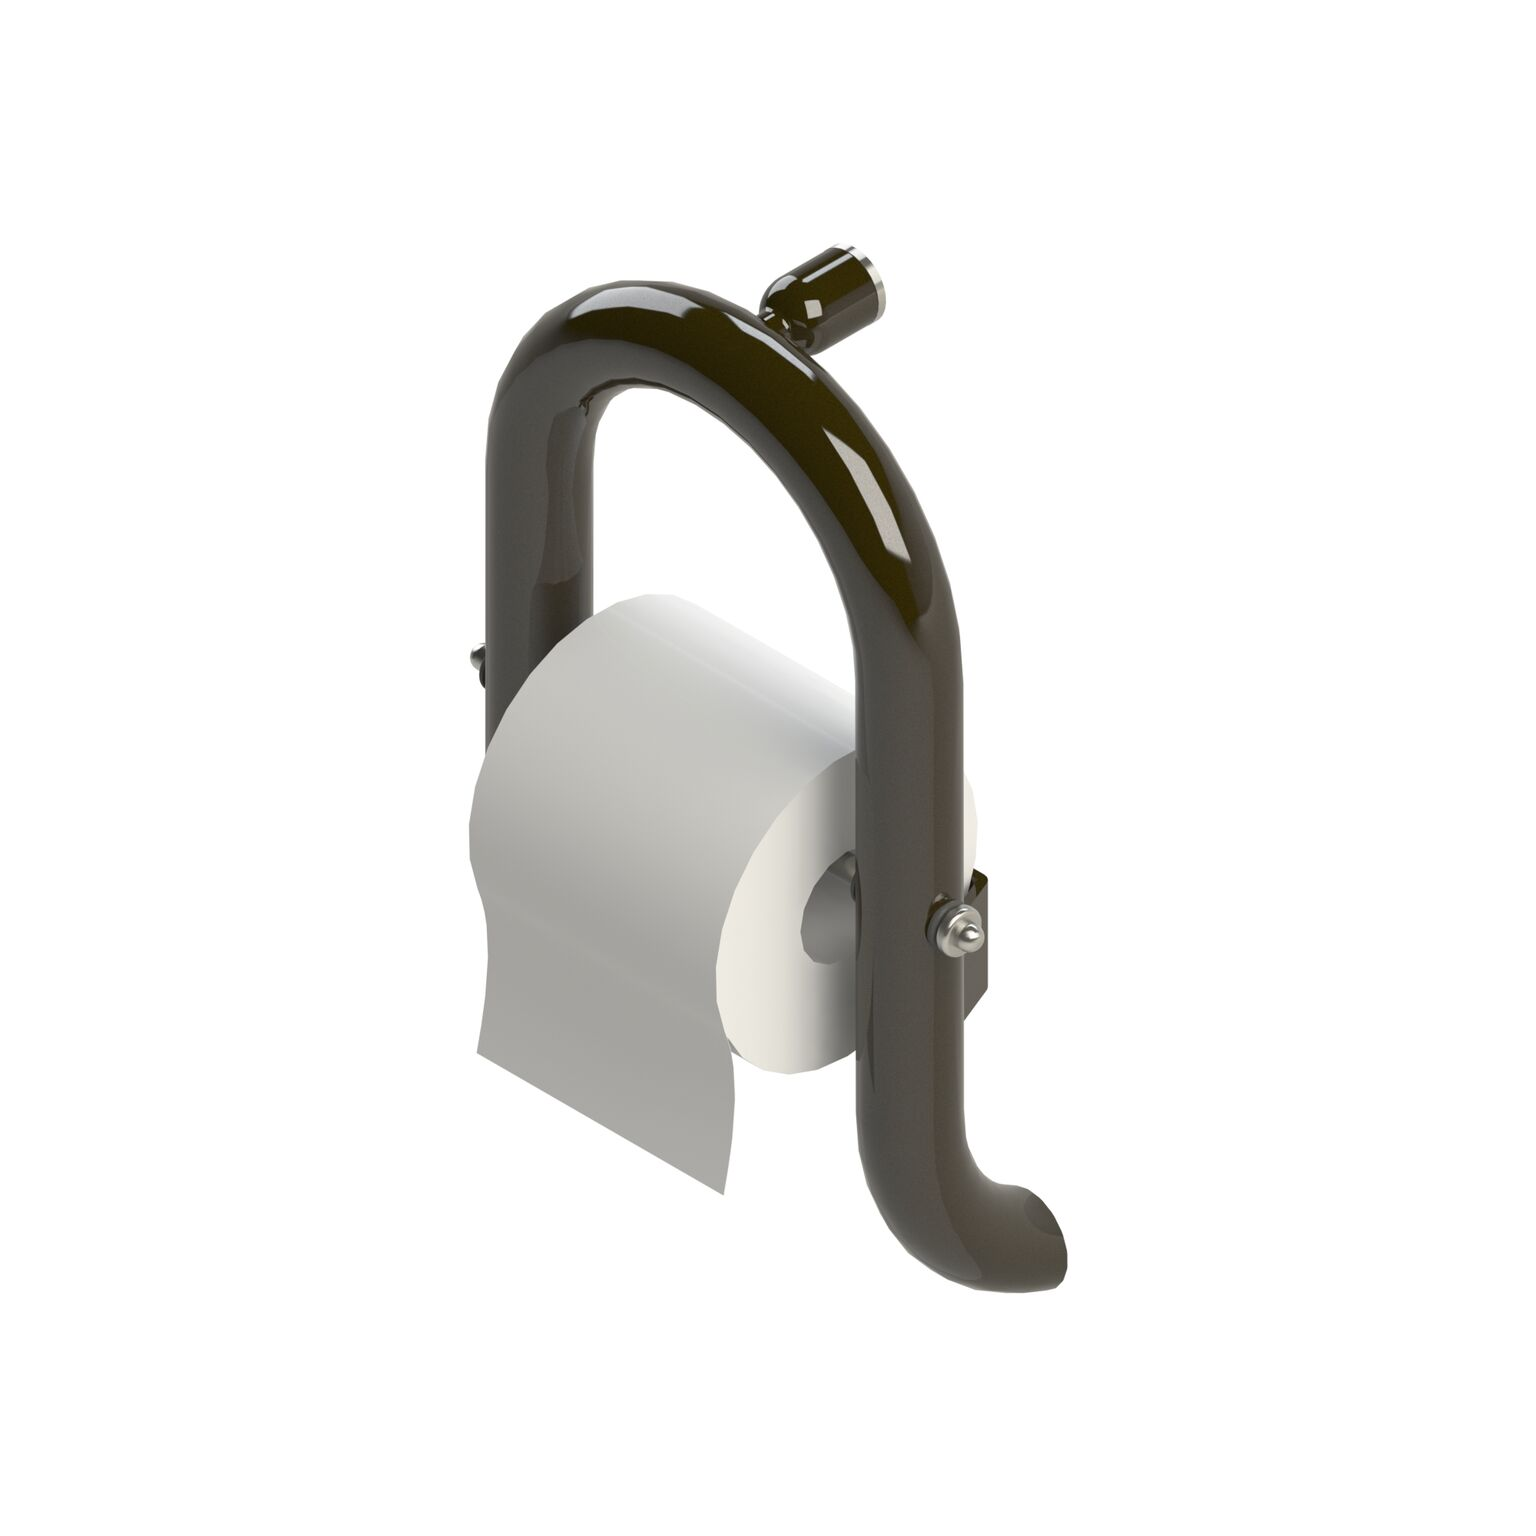 Concealed Toilet Paper Holder Total Access Centre